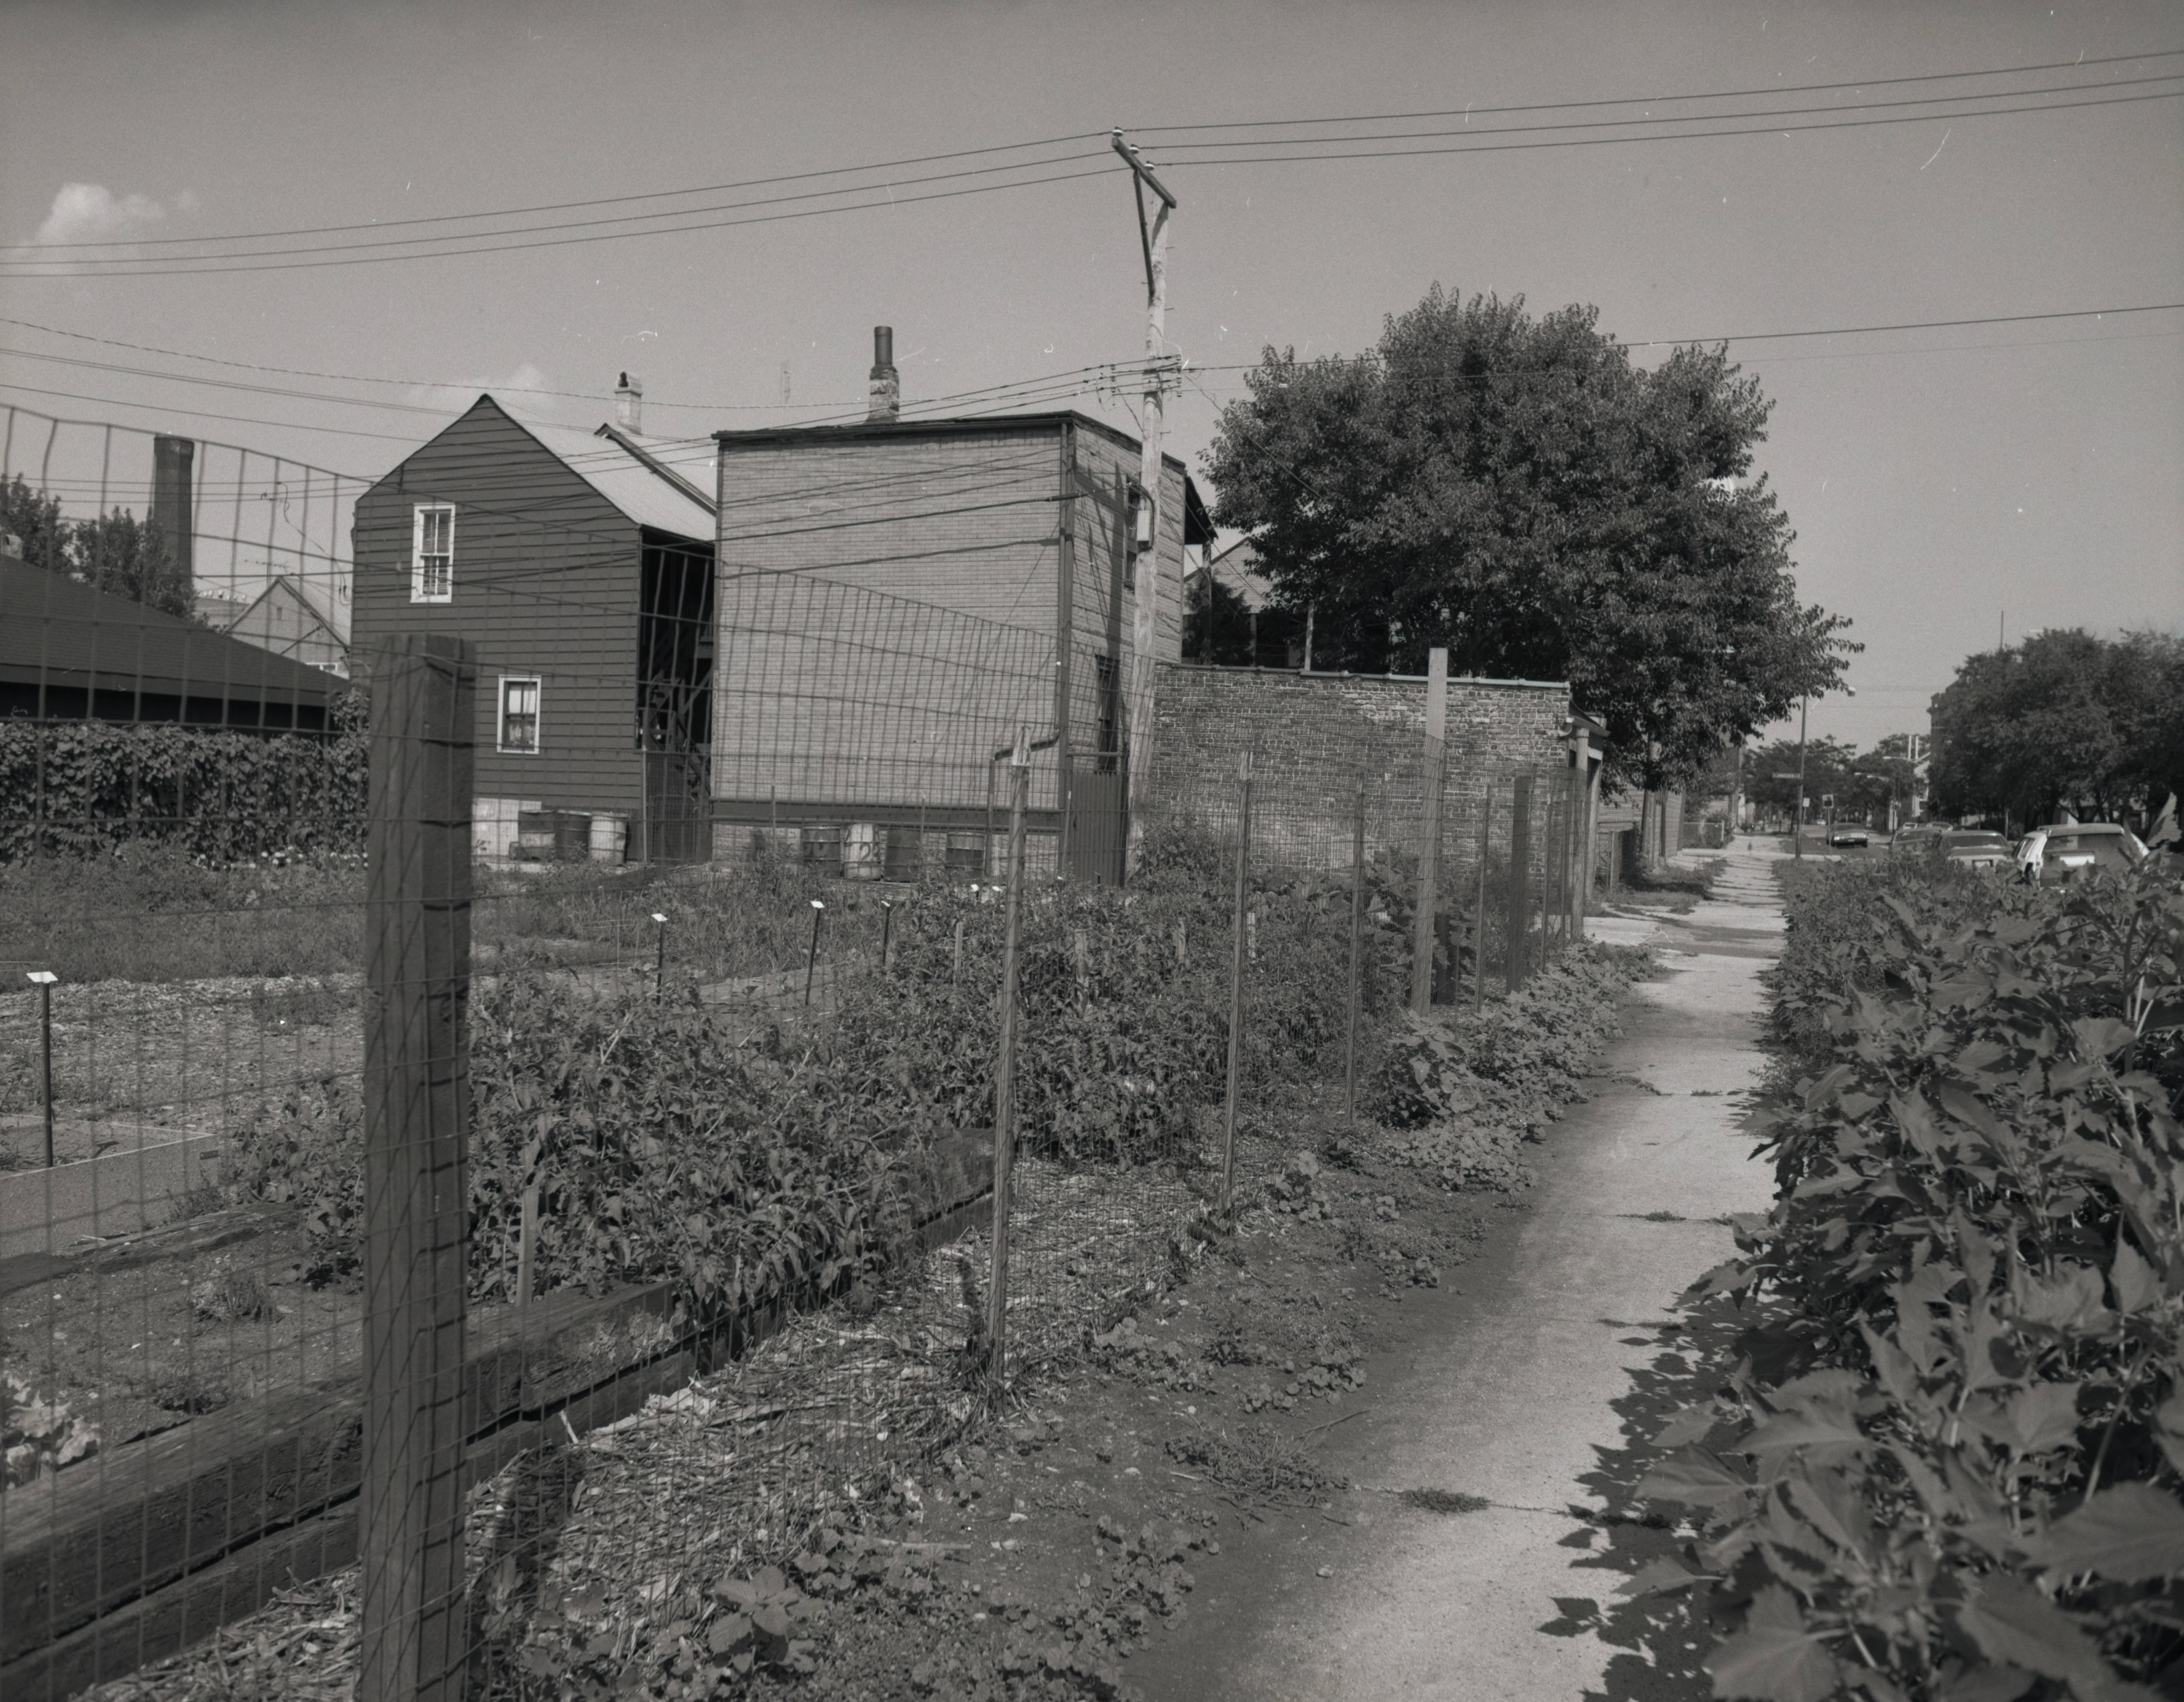 A fence separates two urban gardens. There are residential buildings in the background.